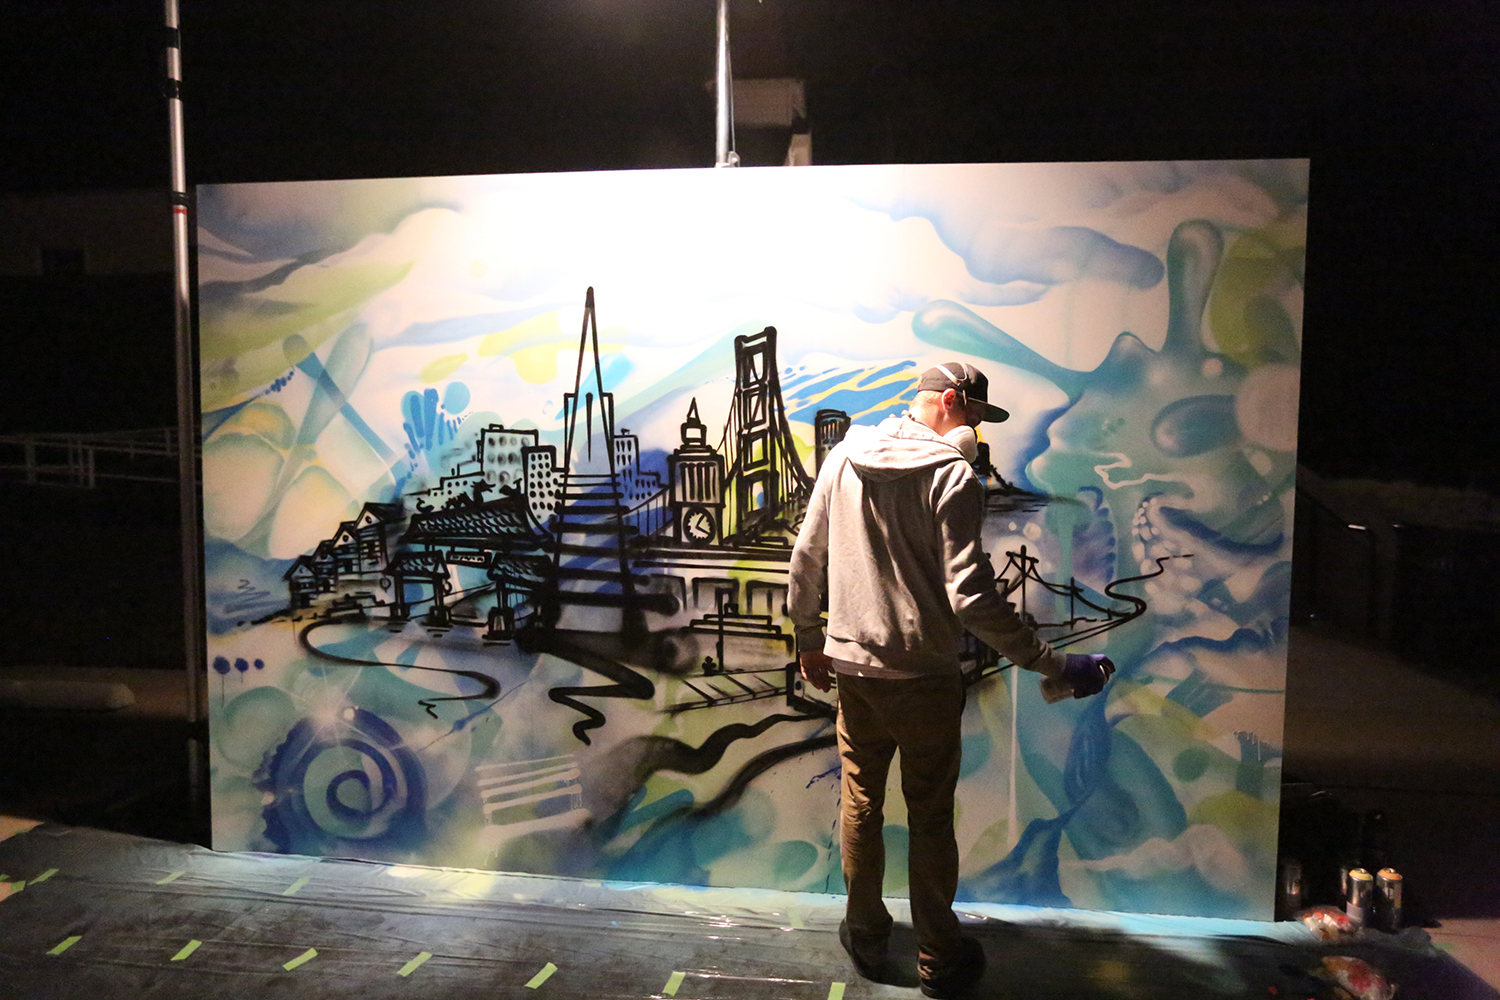 California graffiti artist does live art